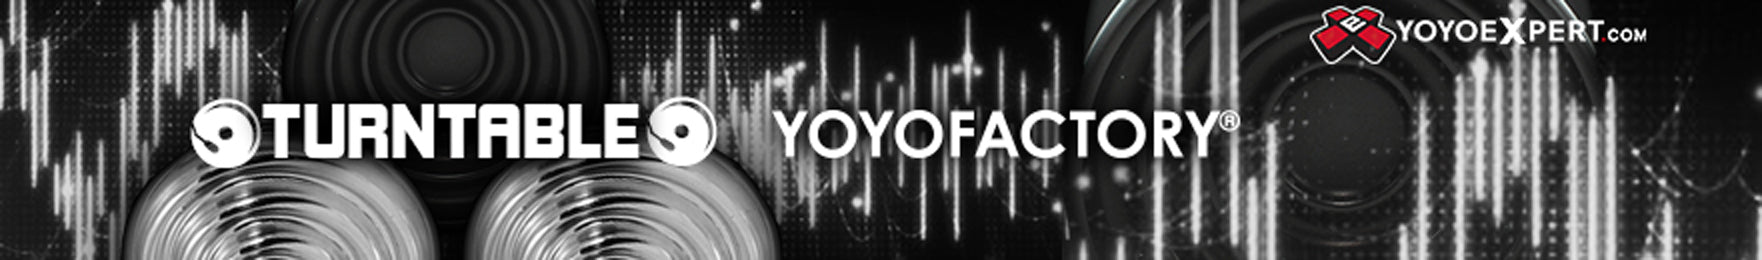 yoyofactory turntable header